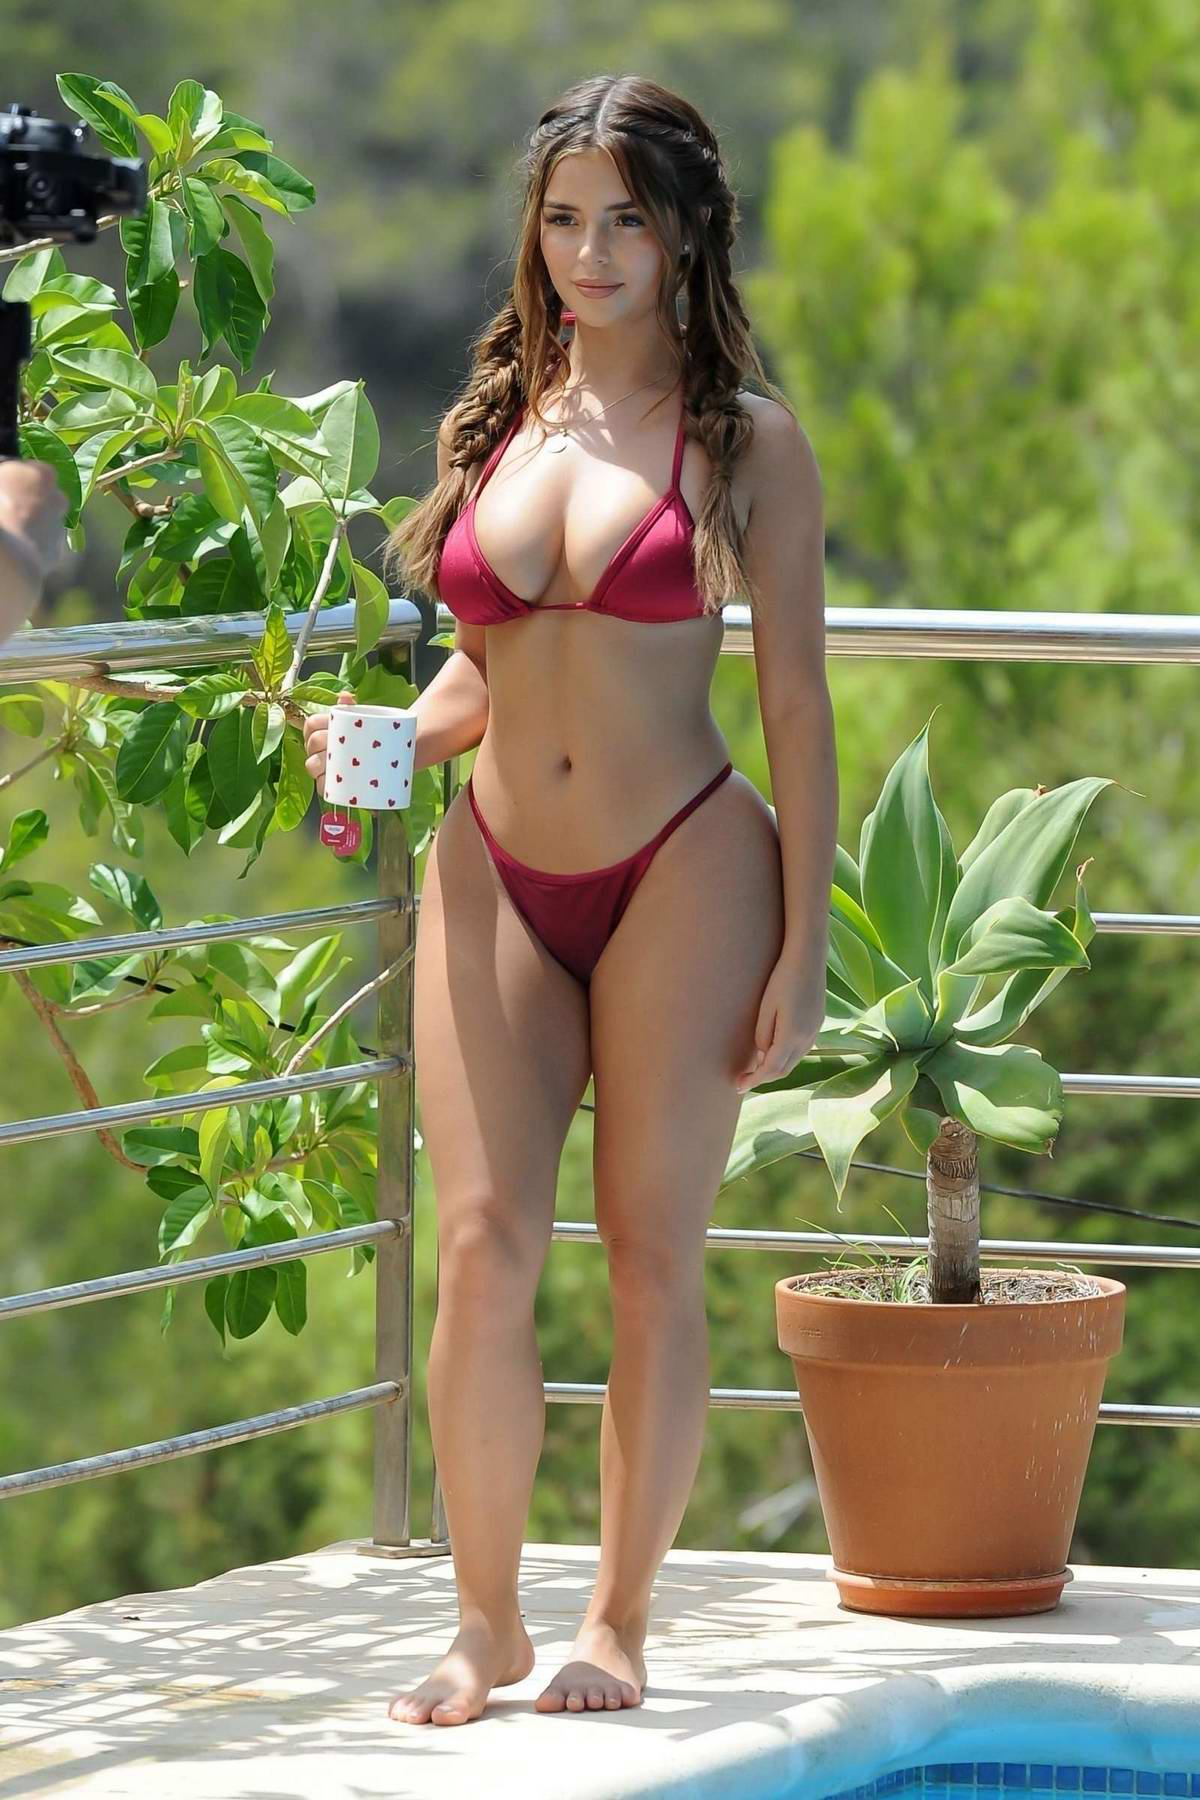 Demi Rose Mawby wears a red bikini during a photoshoot by the pool in Ibiza, Spain